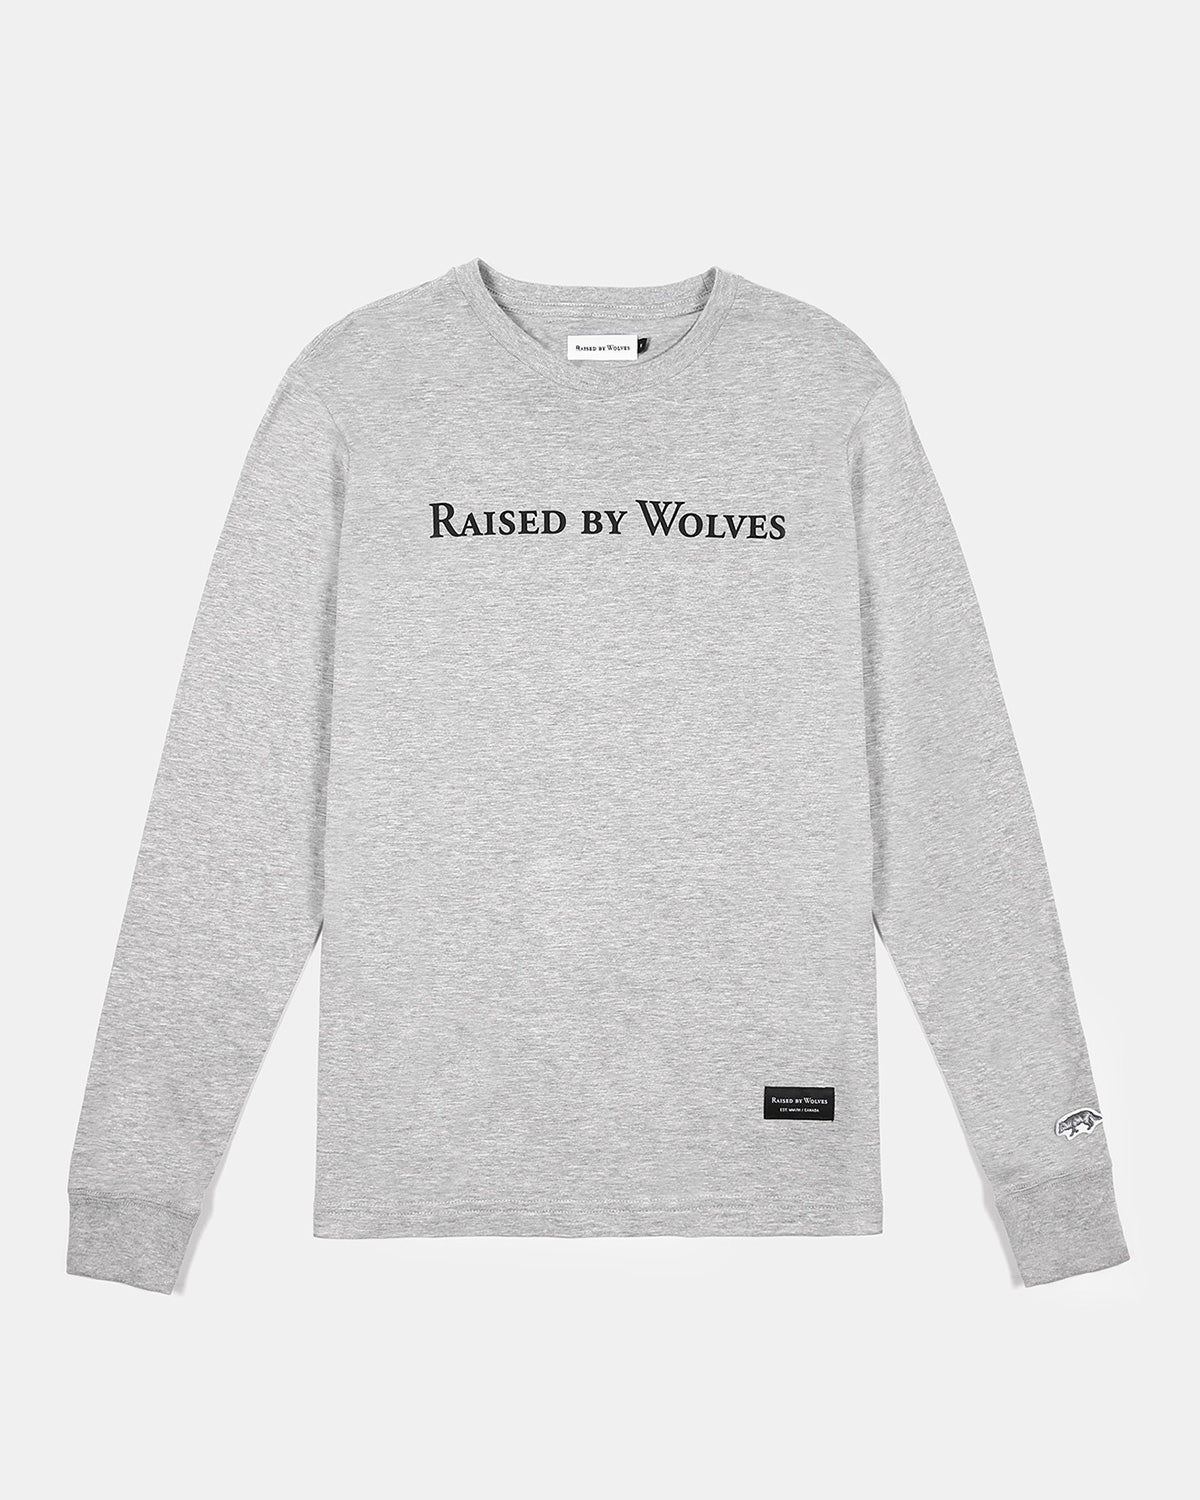 Raised by Wolves - Geowulf Long Sleeve T-Shirt (Heather Grey)